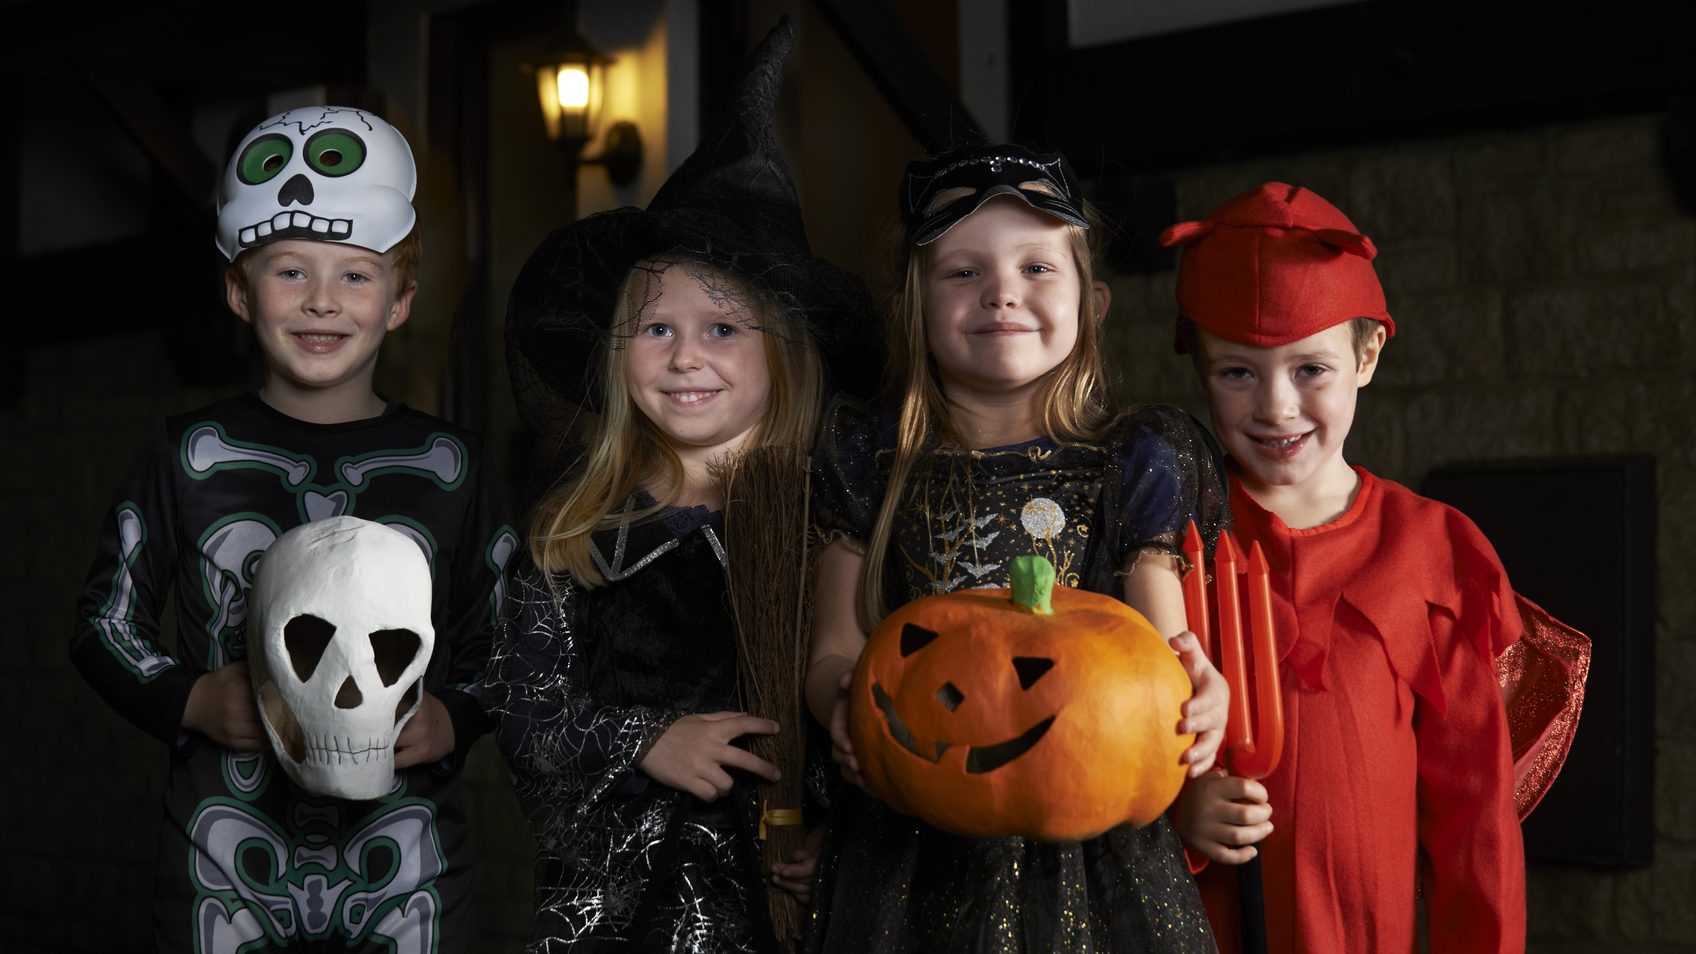 Halloween Party With Children Trick Or Treating In Costume